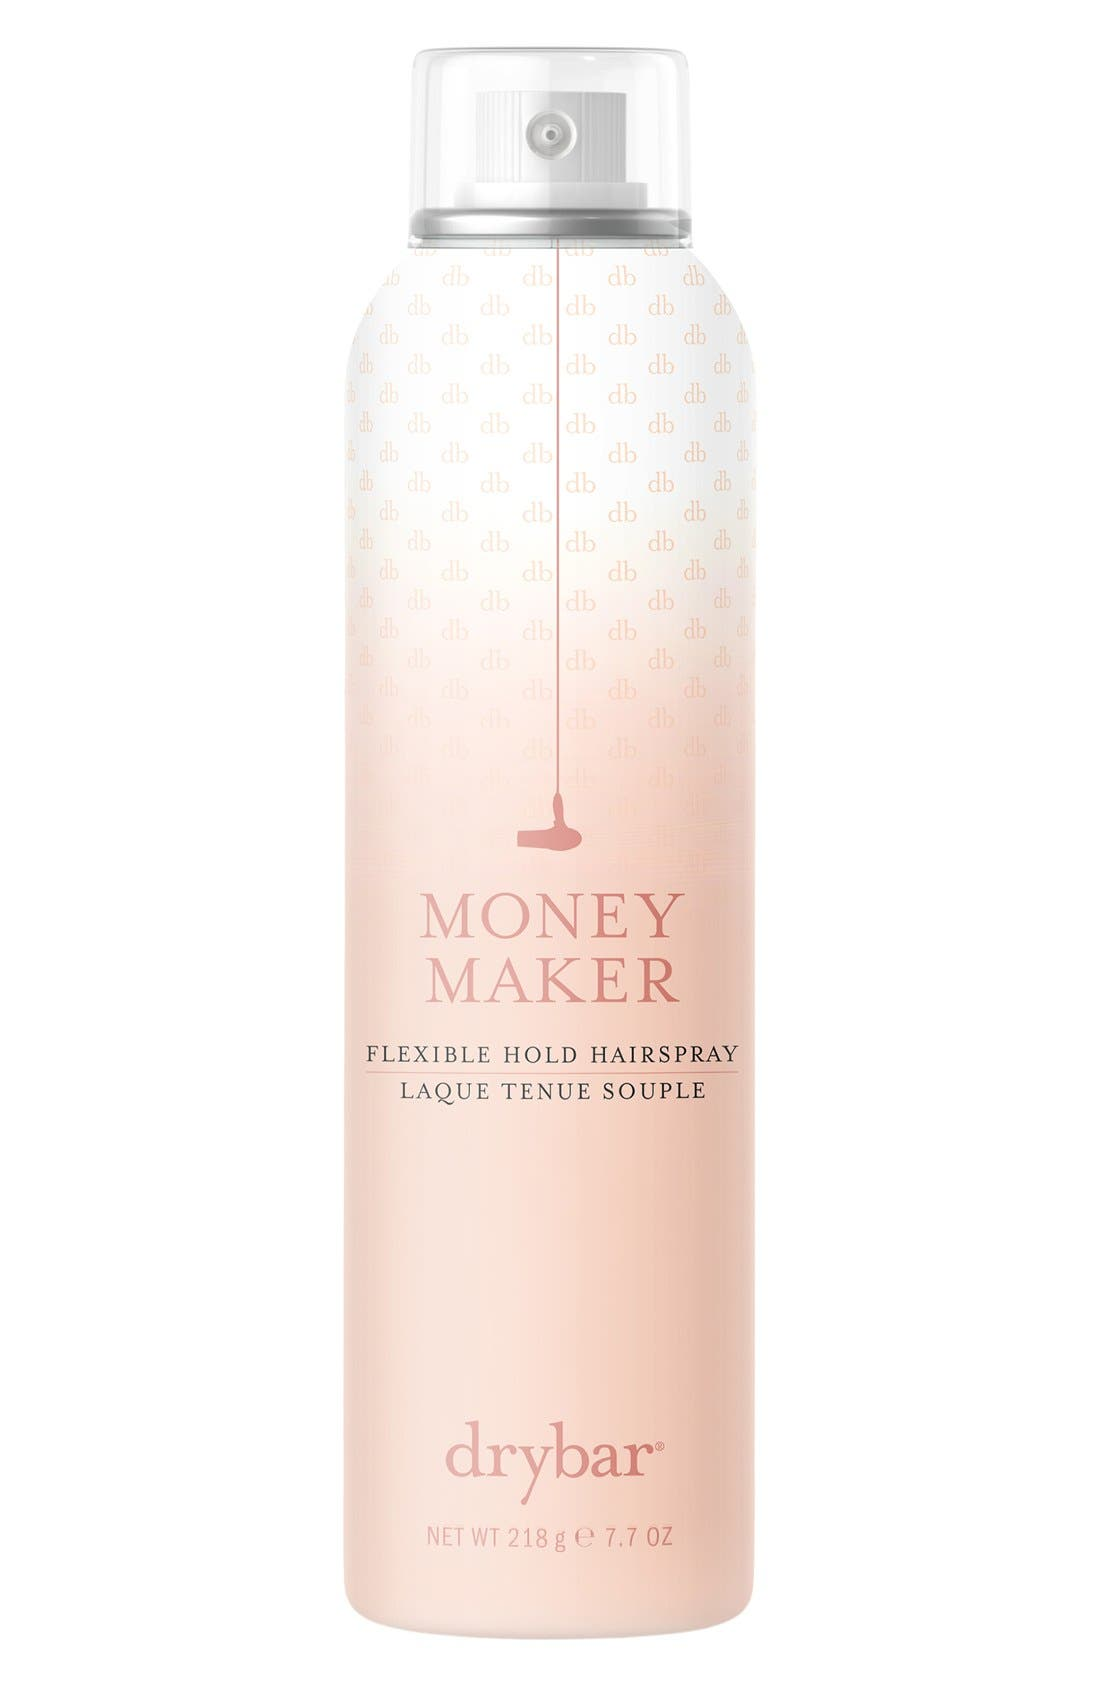 Drybar 'Money Maker' Flexible Hold Hairspray